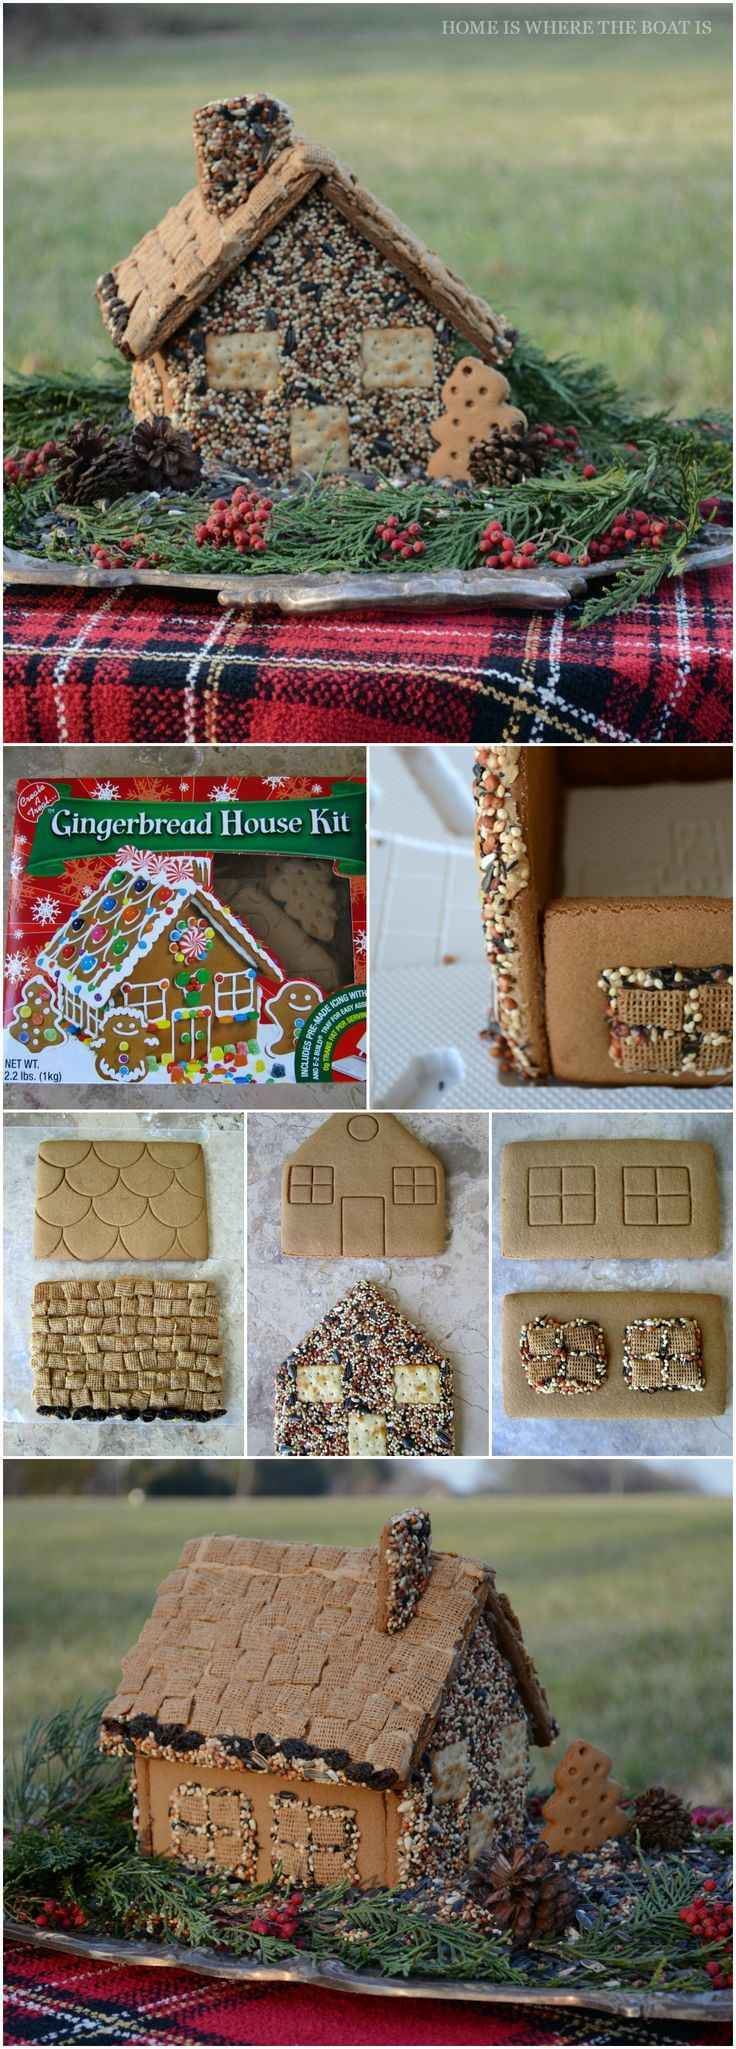 Gingerbread House Bird Feeder! A fun activity for the kids, using a combination of seed, crackers, nuts or dried fruit. Set it outside and wait for your feathered friends to enjoy their edible house! | homeiswheretheboatis.net